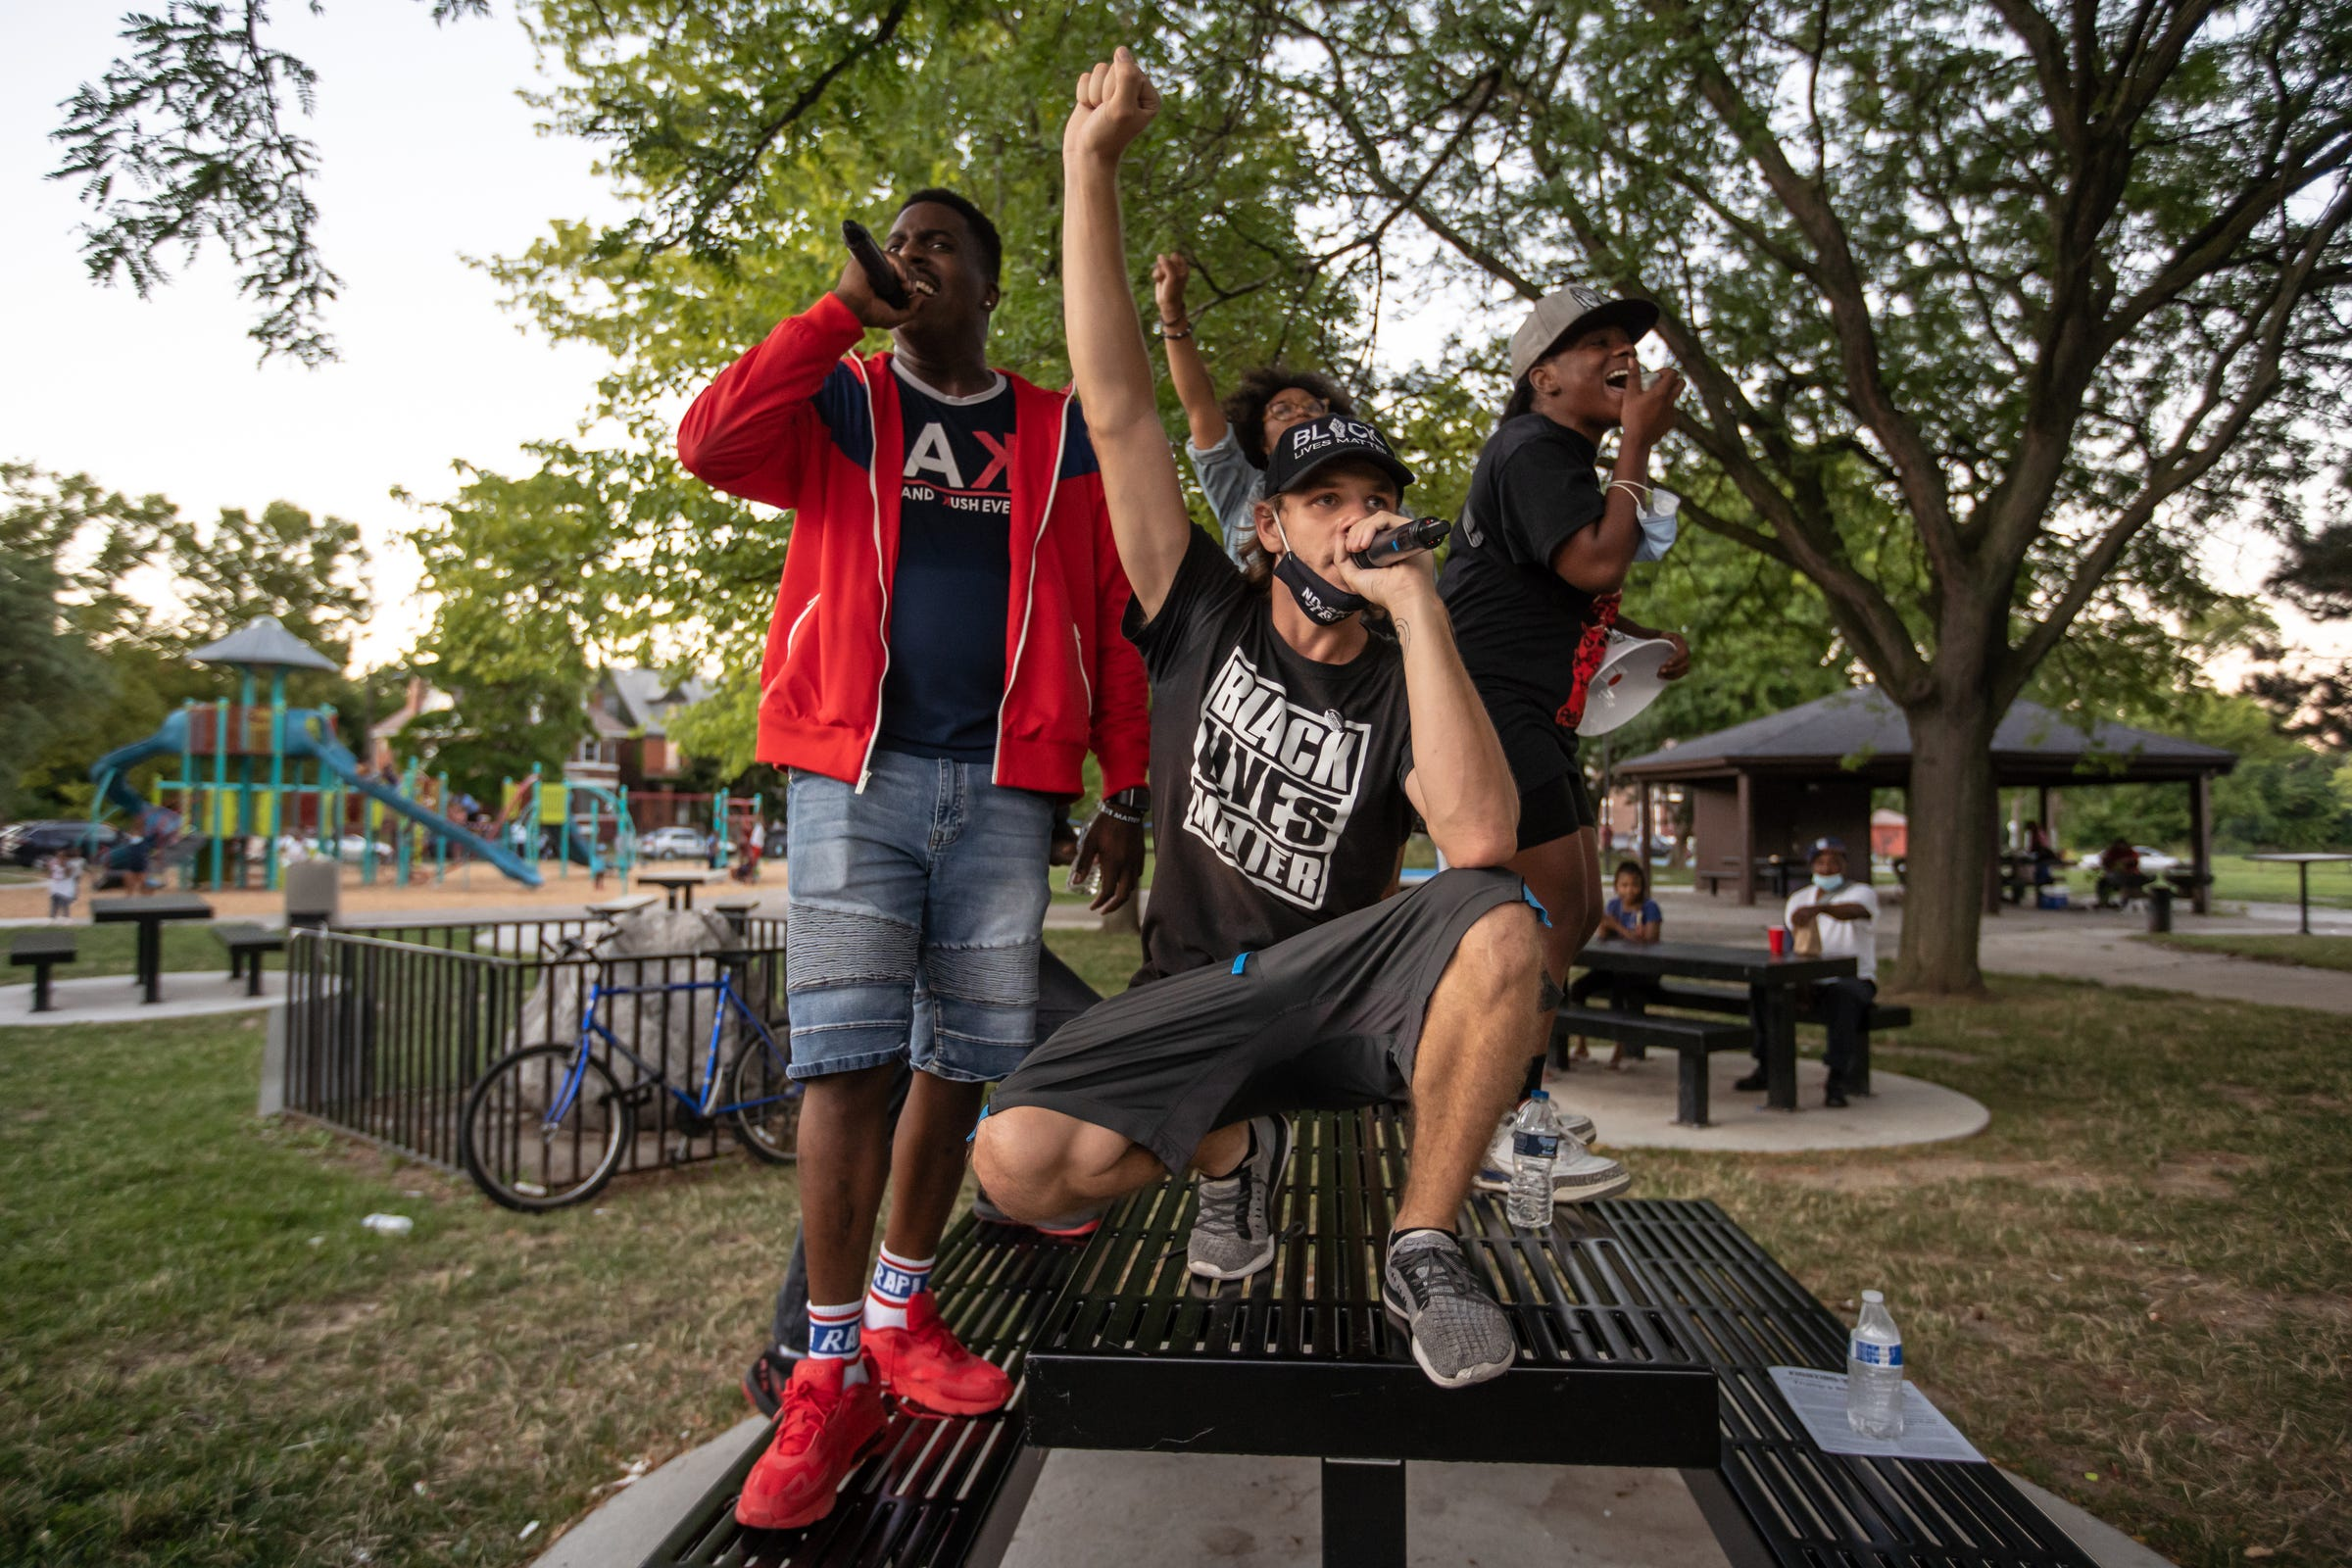 Brendan Scorpio (foreground) of Detroit raises his fist while returning to Bennett Playground with other Detroit Will Breathe members (left to right) Jae Bass of Detroit, Sammie Lewis of Detroit and Shaqualla Johnson of Detroit after marching against police brutality through Detroit's north side on Tuesday, August 18, 2020.